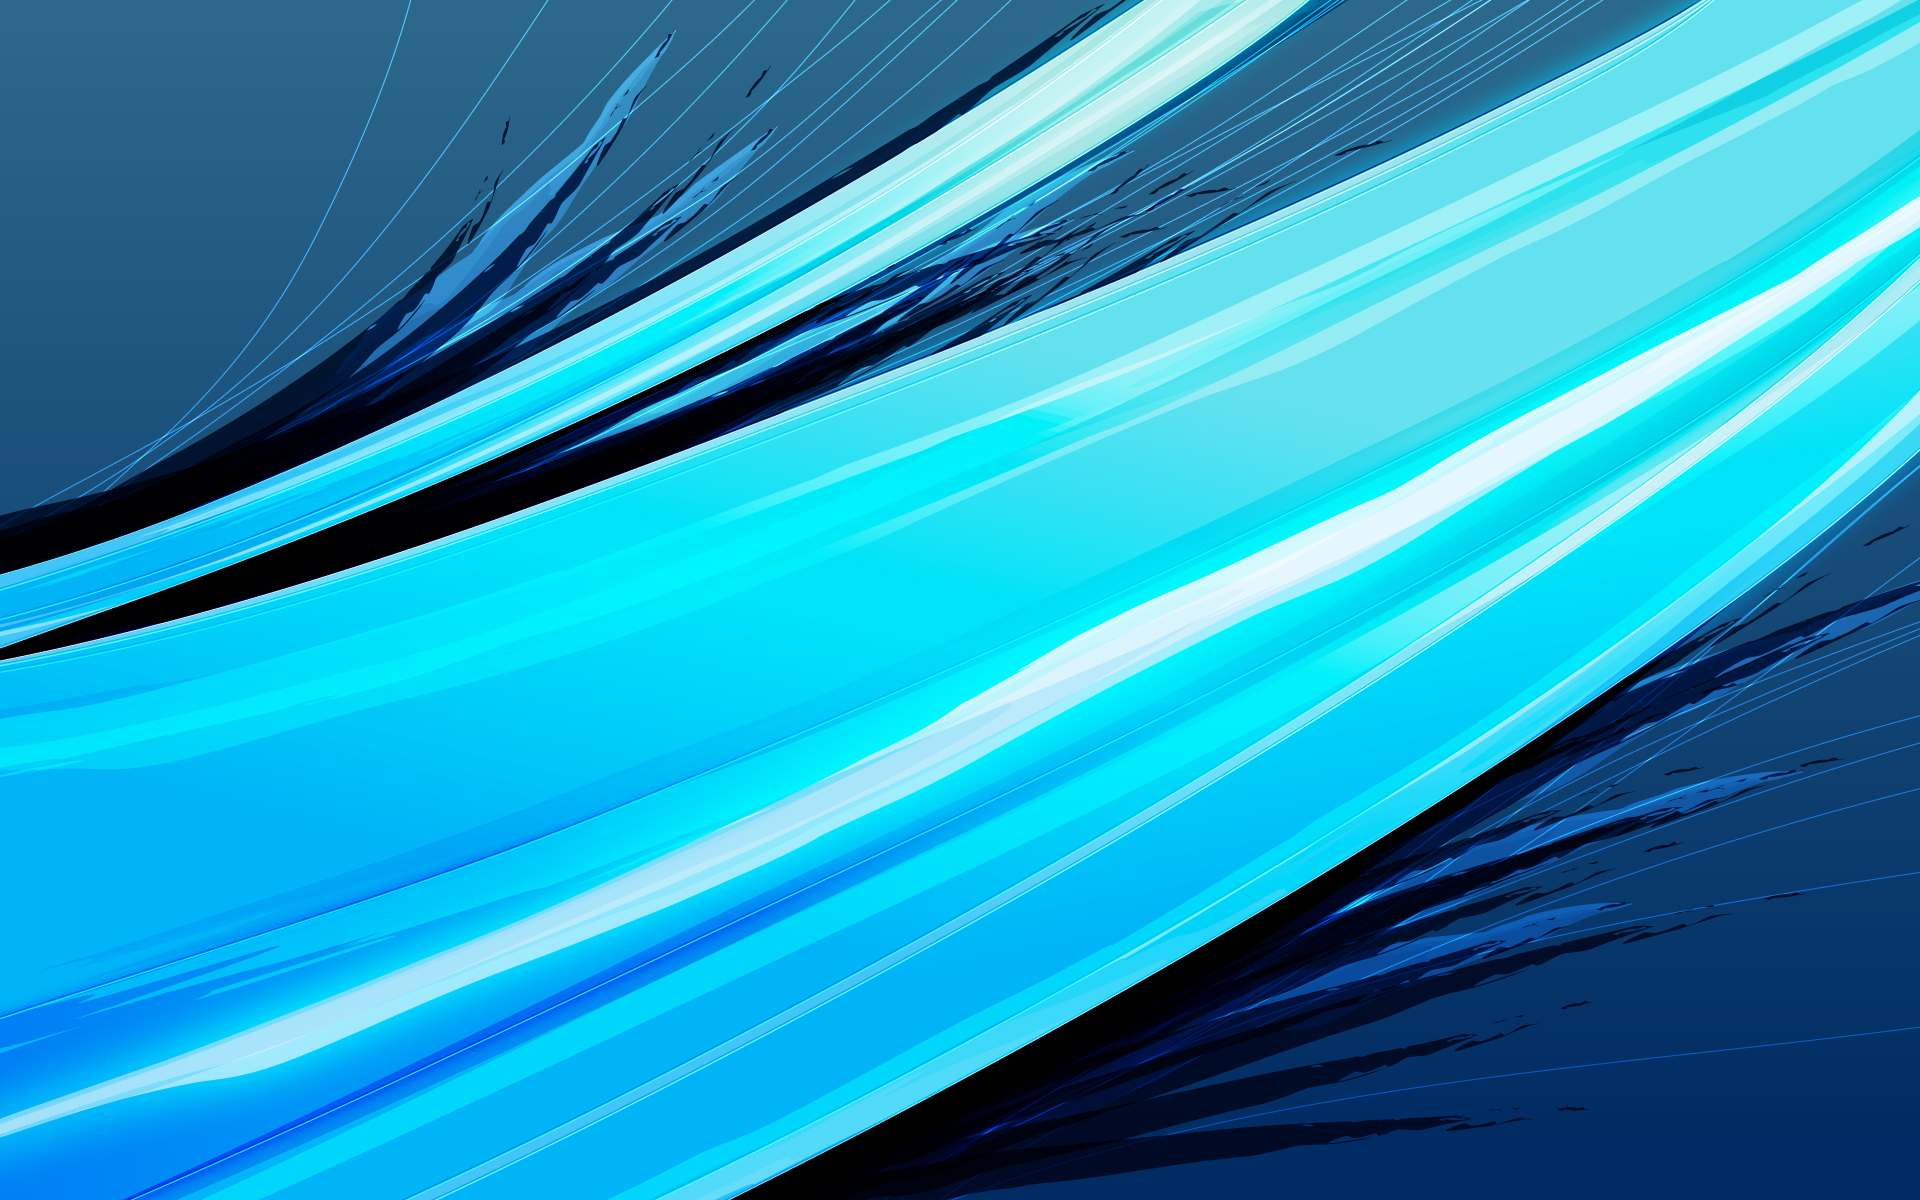 abstract energy wallpaper 45499